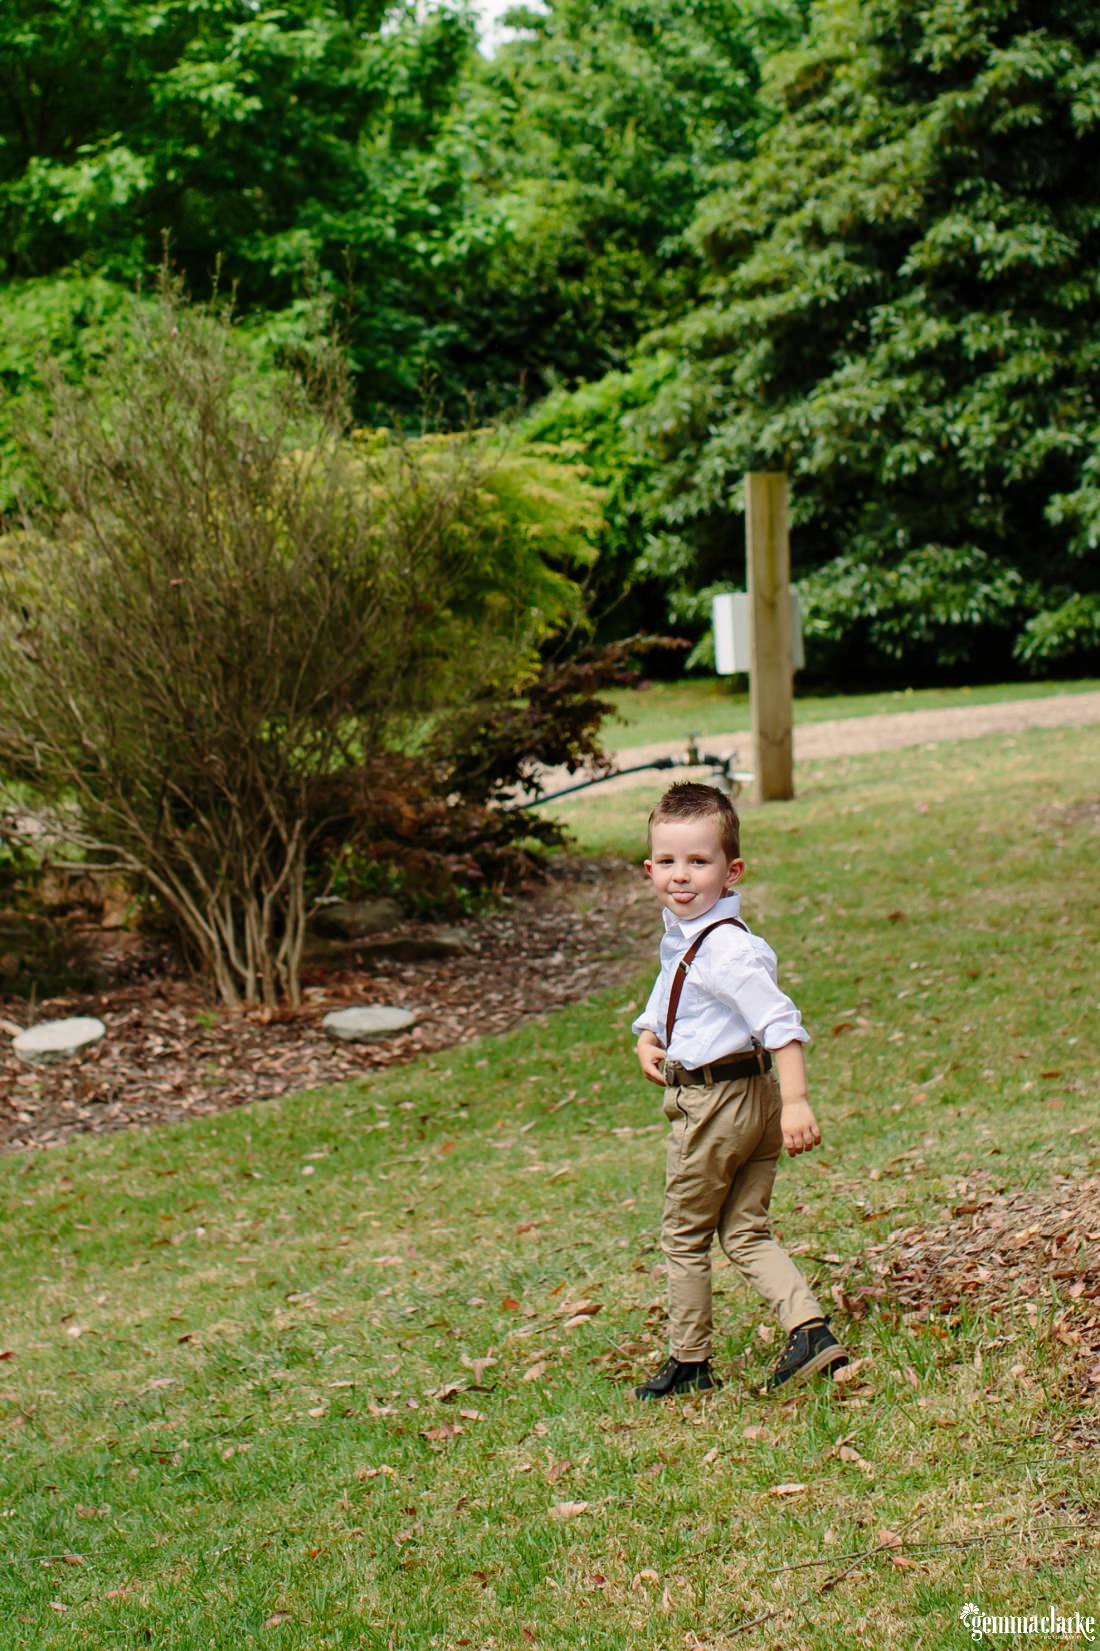 A young boy in a garden walking away, turning back over his shoulder to poke out his tongue